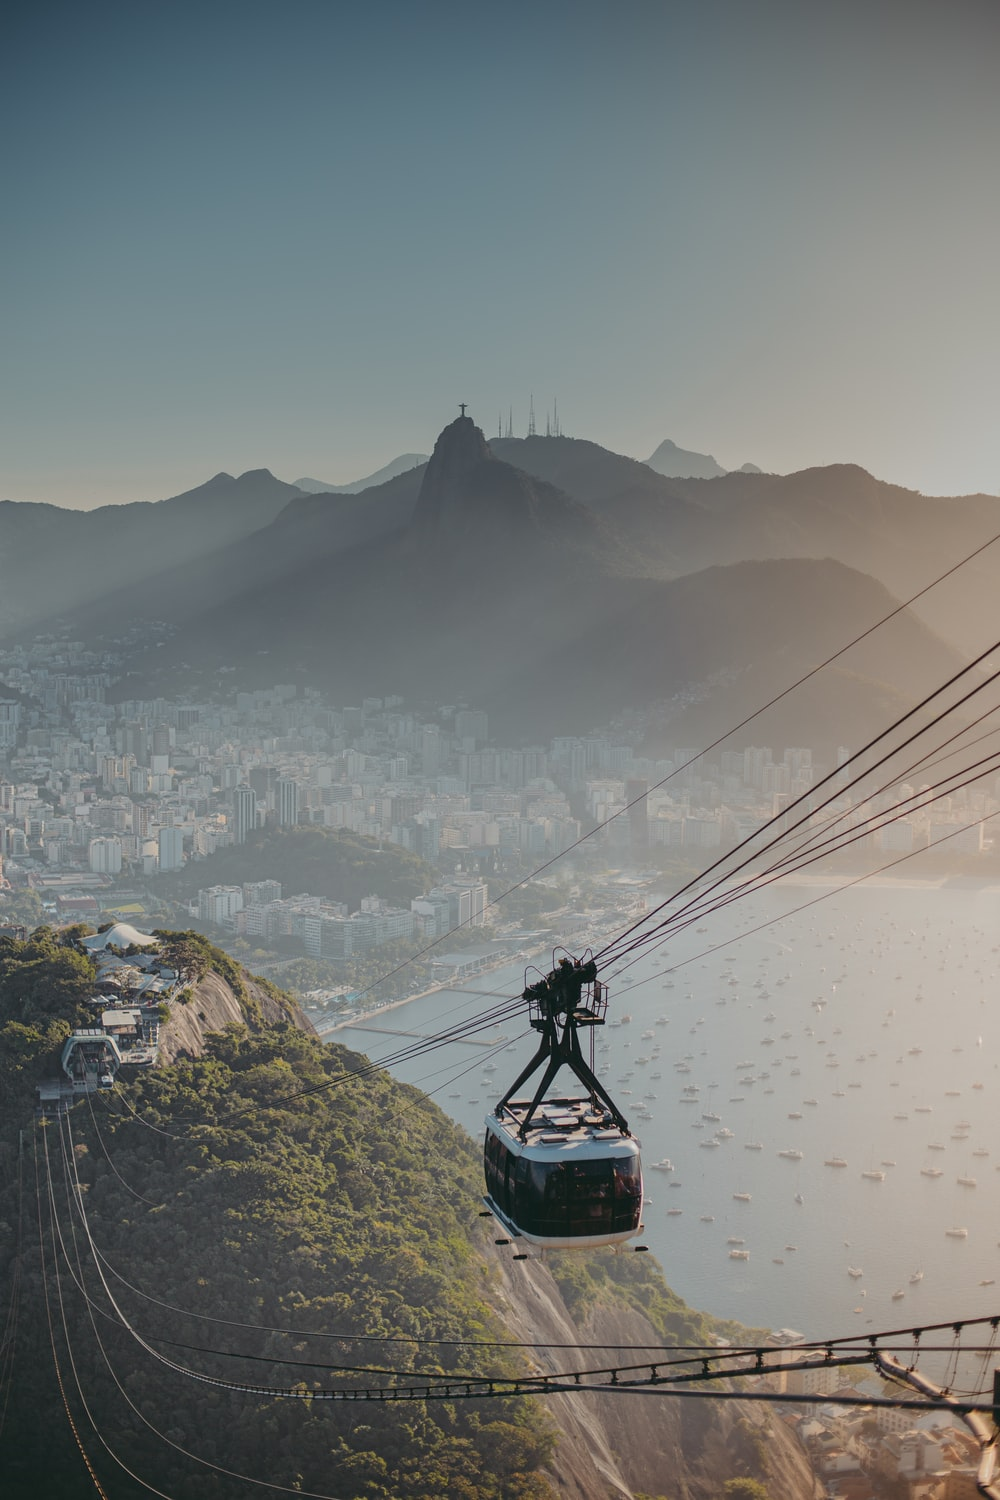 black cable car over the city during daytime